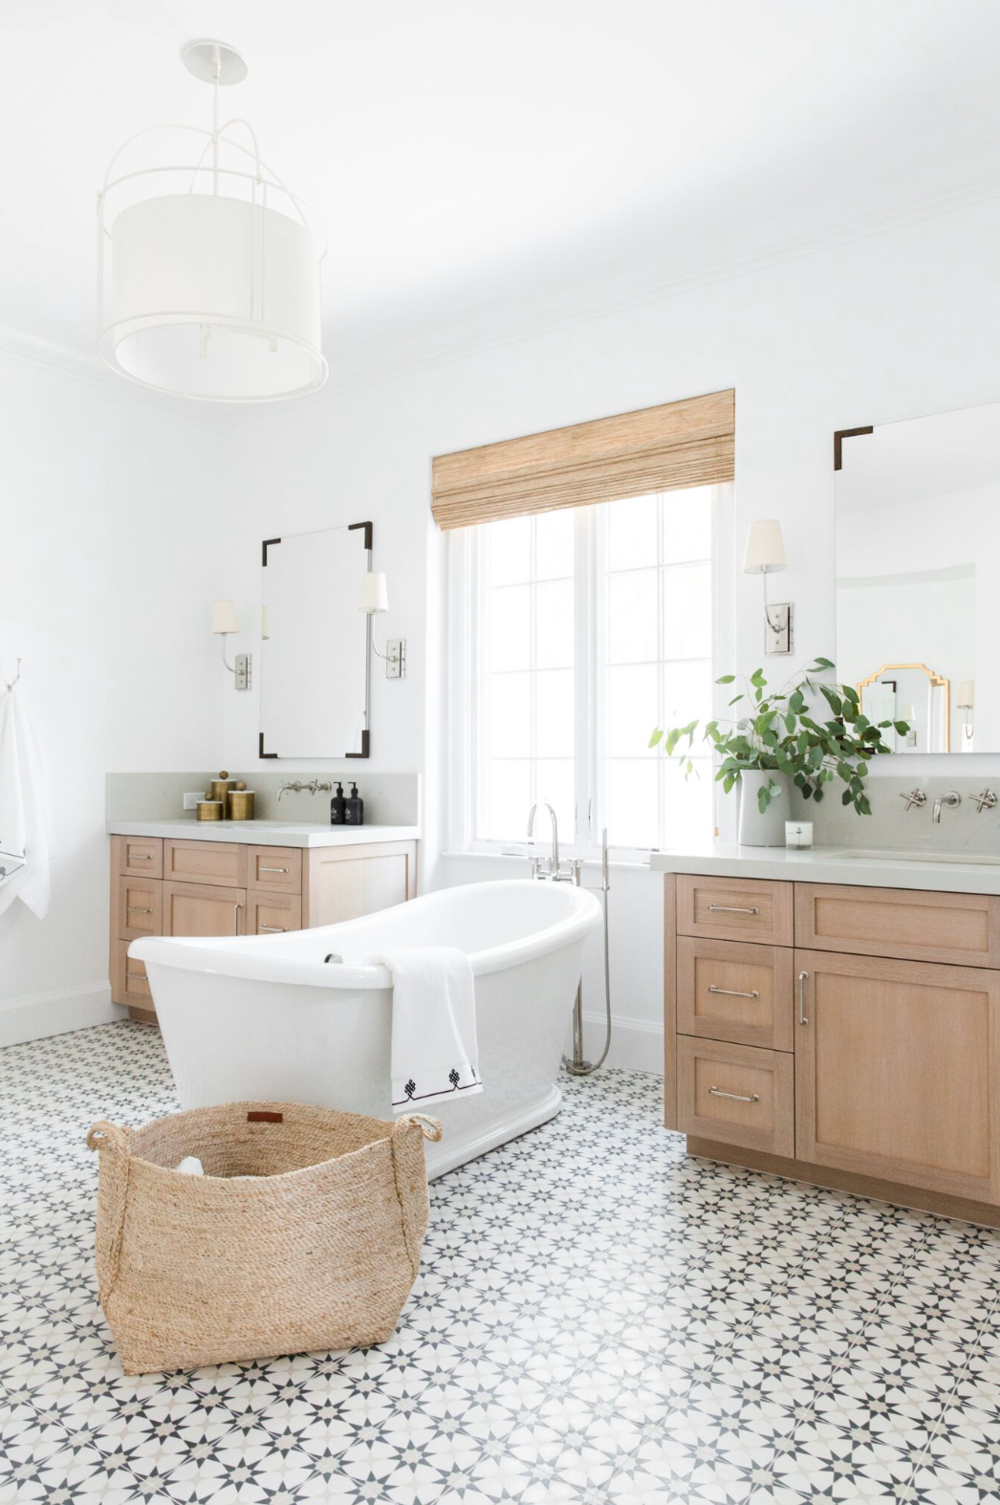 House Tour Master Bath: The 15 Most Beautiful Bathrooms On Pinterest